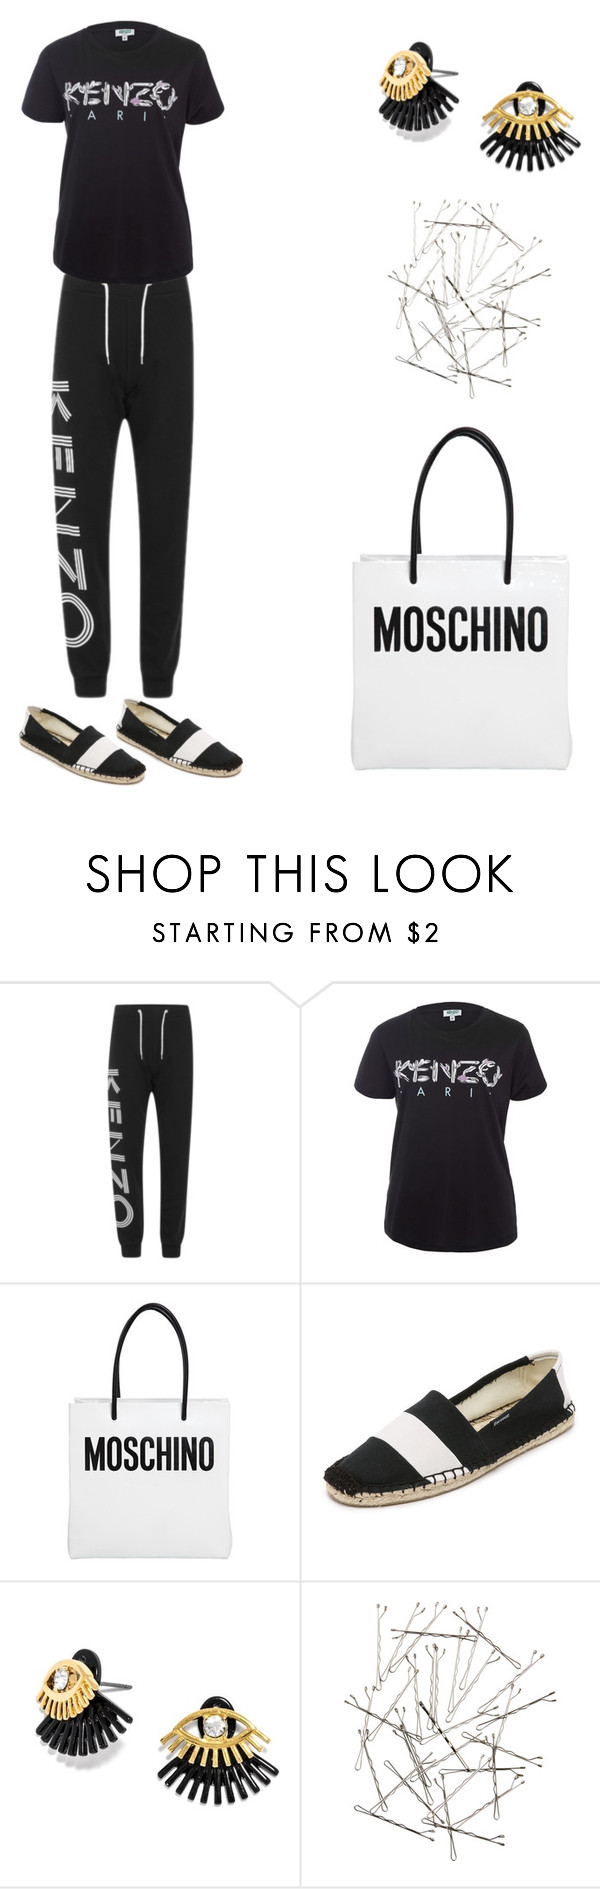 """Grace"" by zoechengrace ❤ liked on Polyvore featuring Kenzo, Moschino, Soludos, BaubleBar and Monki"